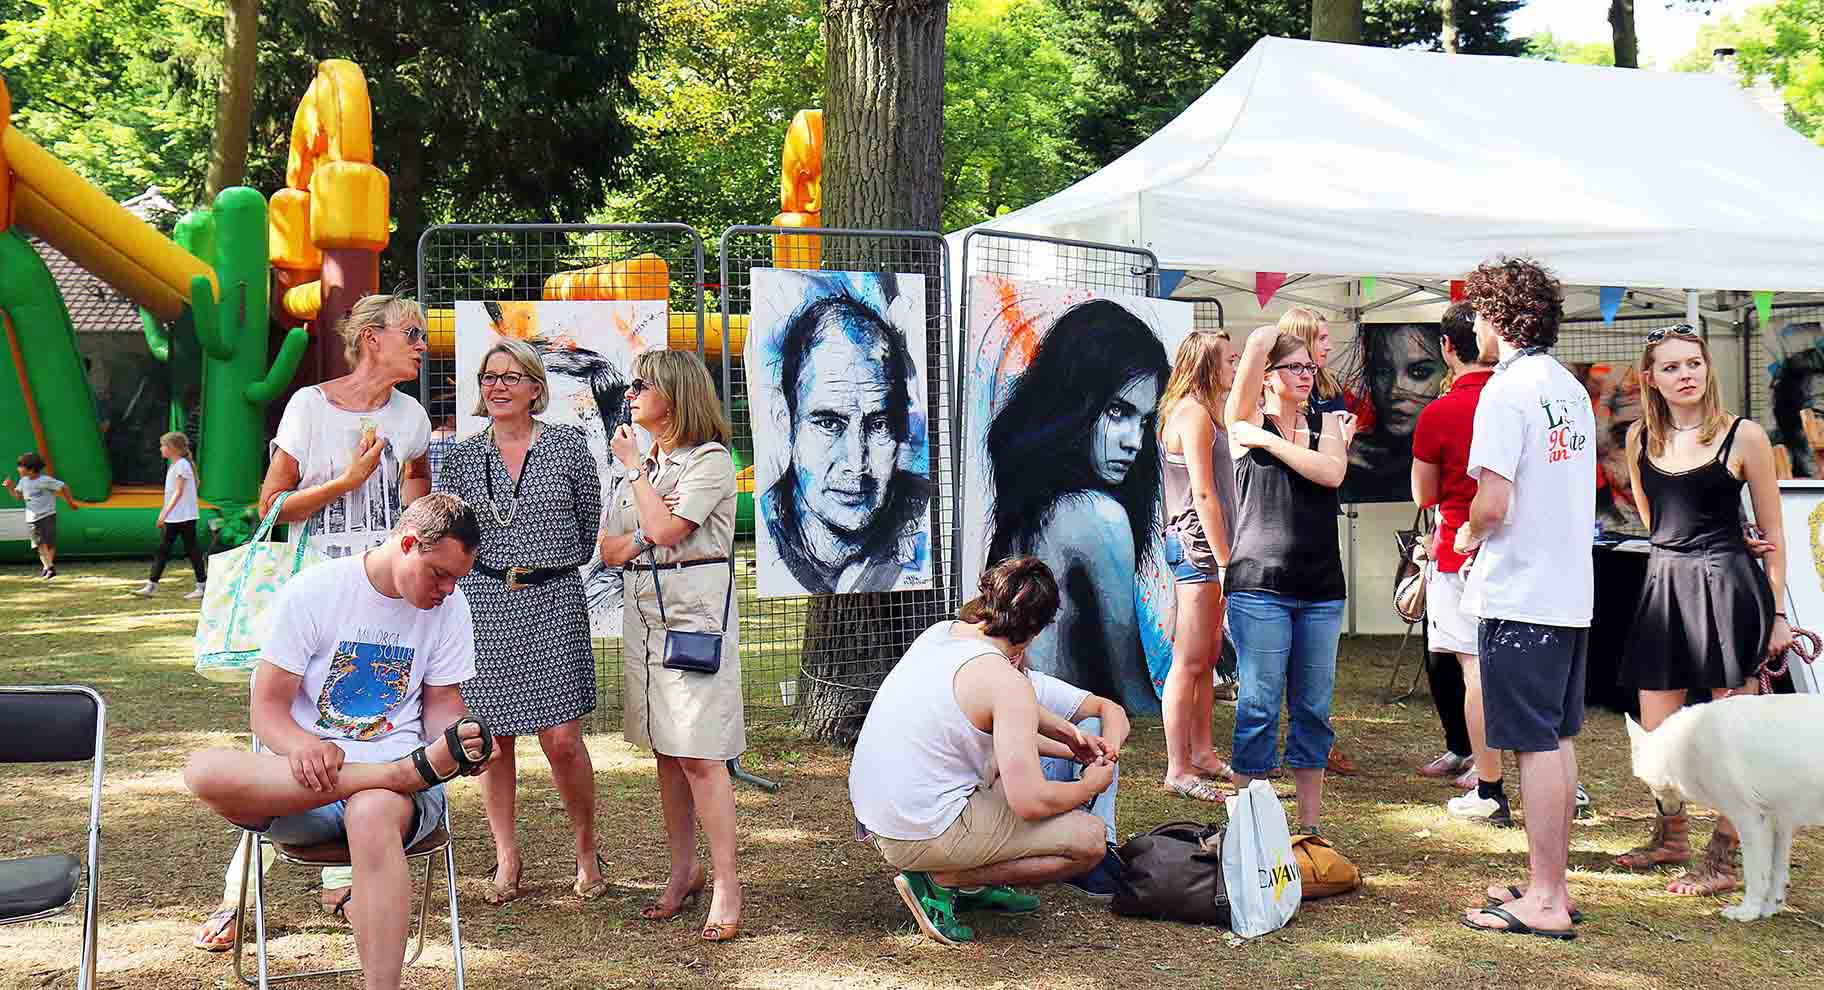 ambiance pendant l'expositions le lys chantilly